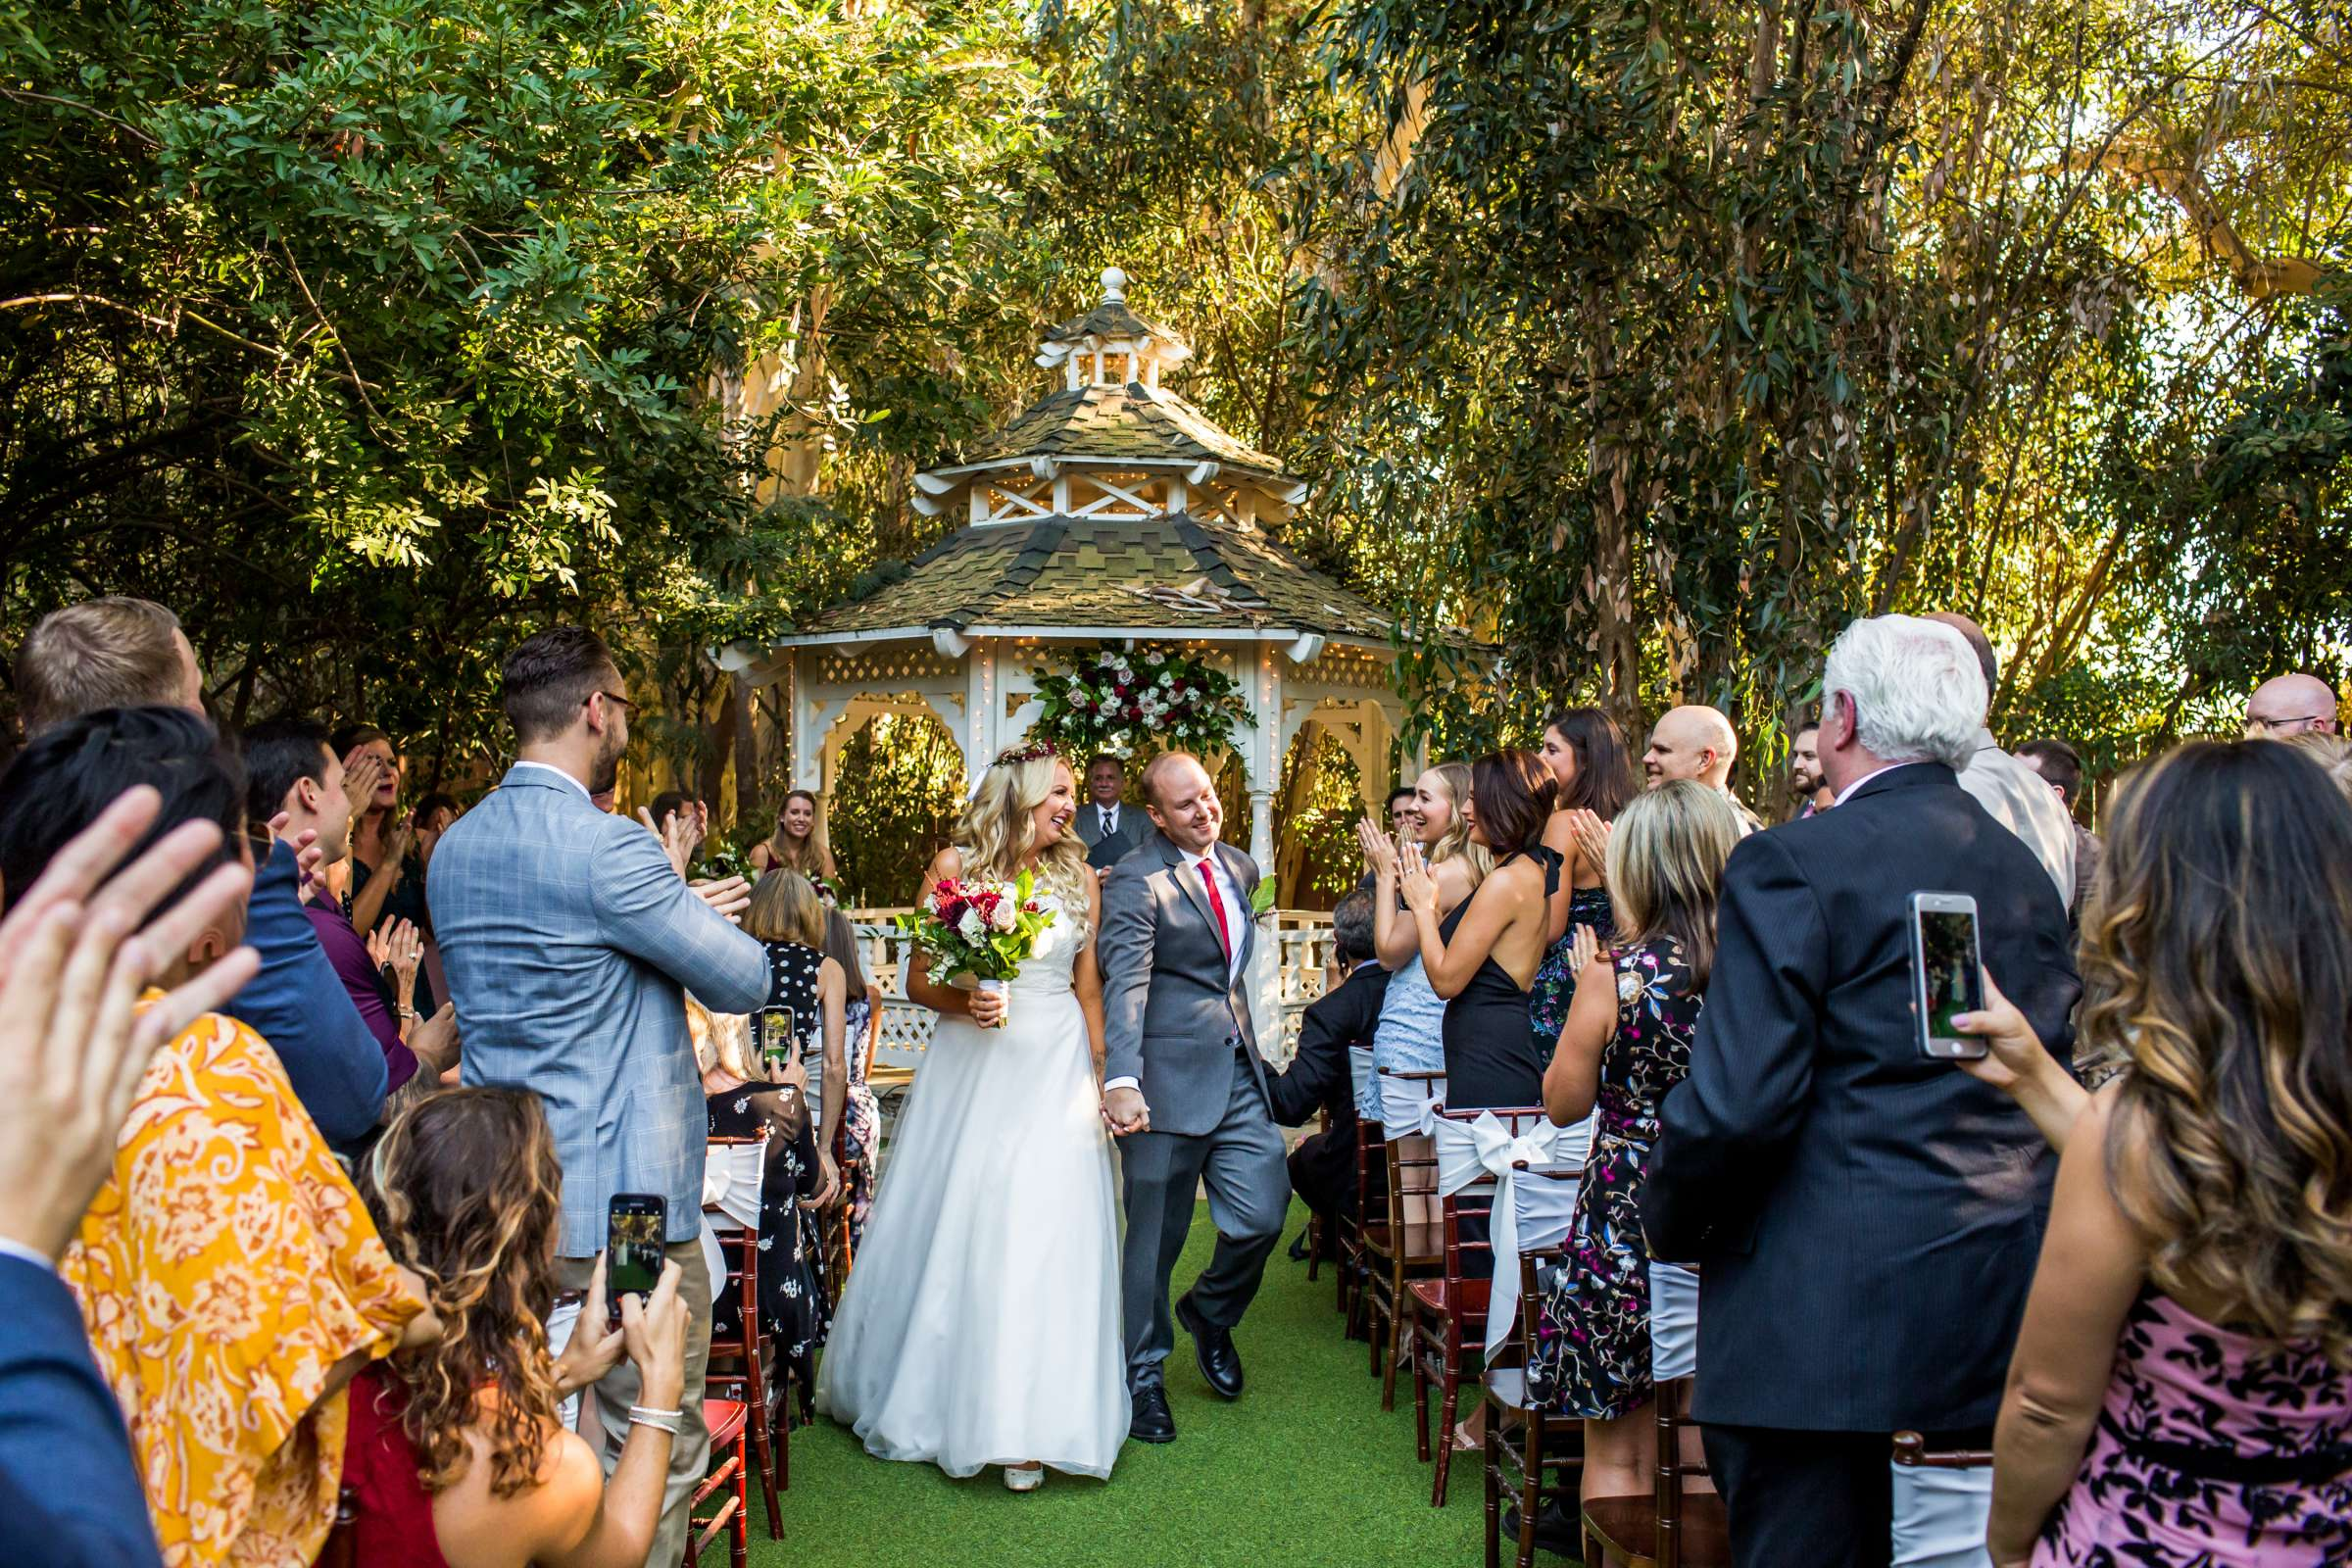 Twin Oaks House & Gardens Wedding Estate Wedding, Brittany and Sean Wedding Photo #95 by True Photography